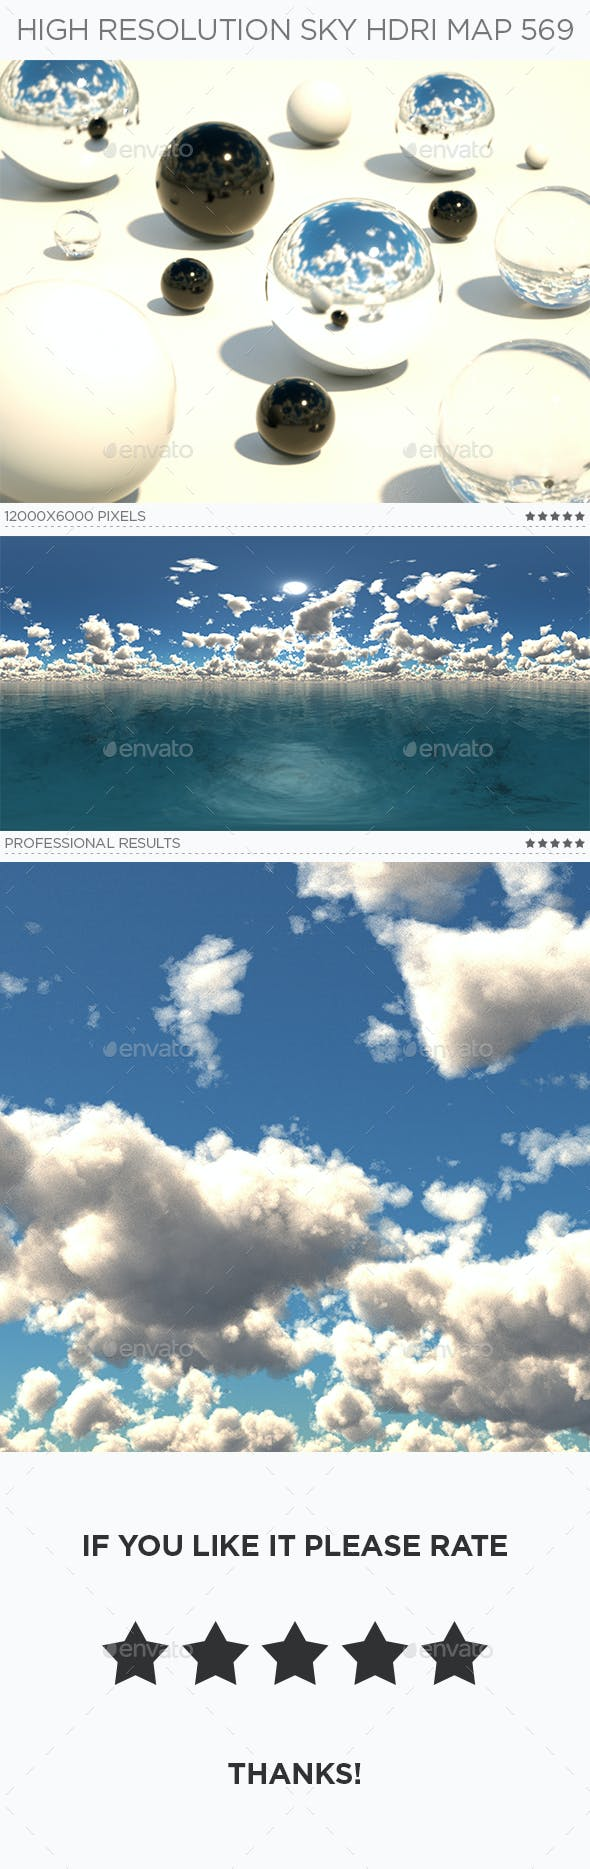 High Resolution Sky HDRi Map 569 - 3DOcean Item for Sale